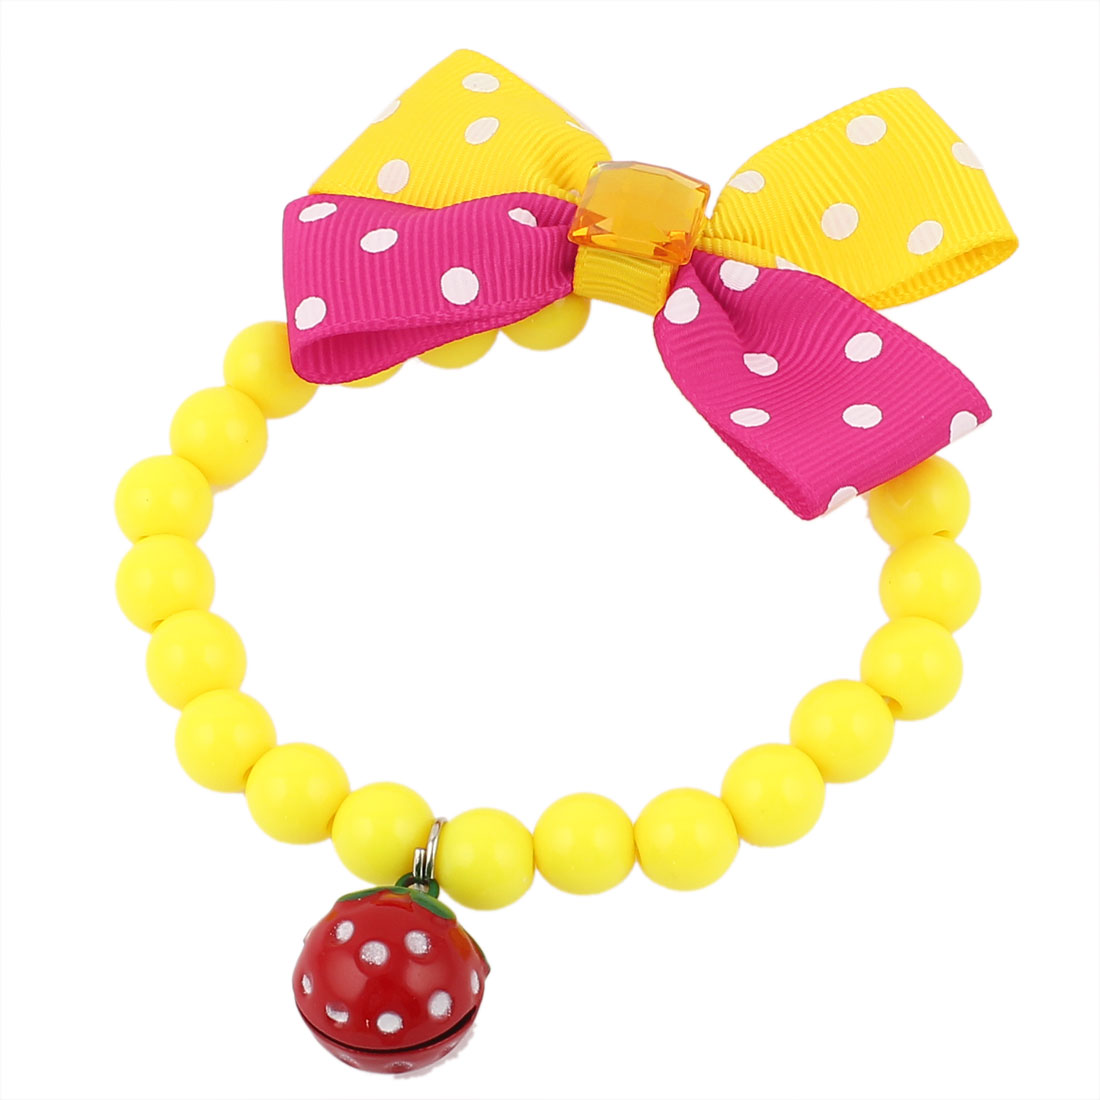 Faux Crystal Bowtie Accent Pet Dog Plastic Beads Collar Necklace Yellow Fuchsia XS